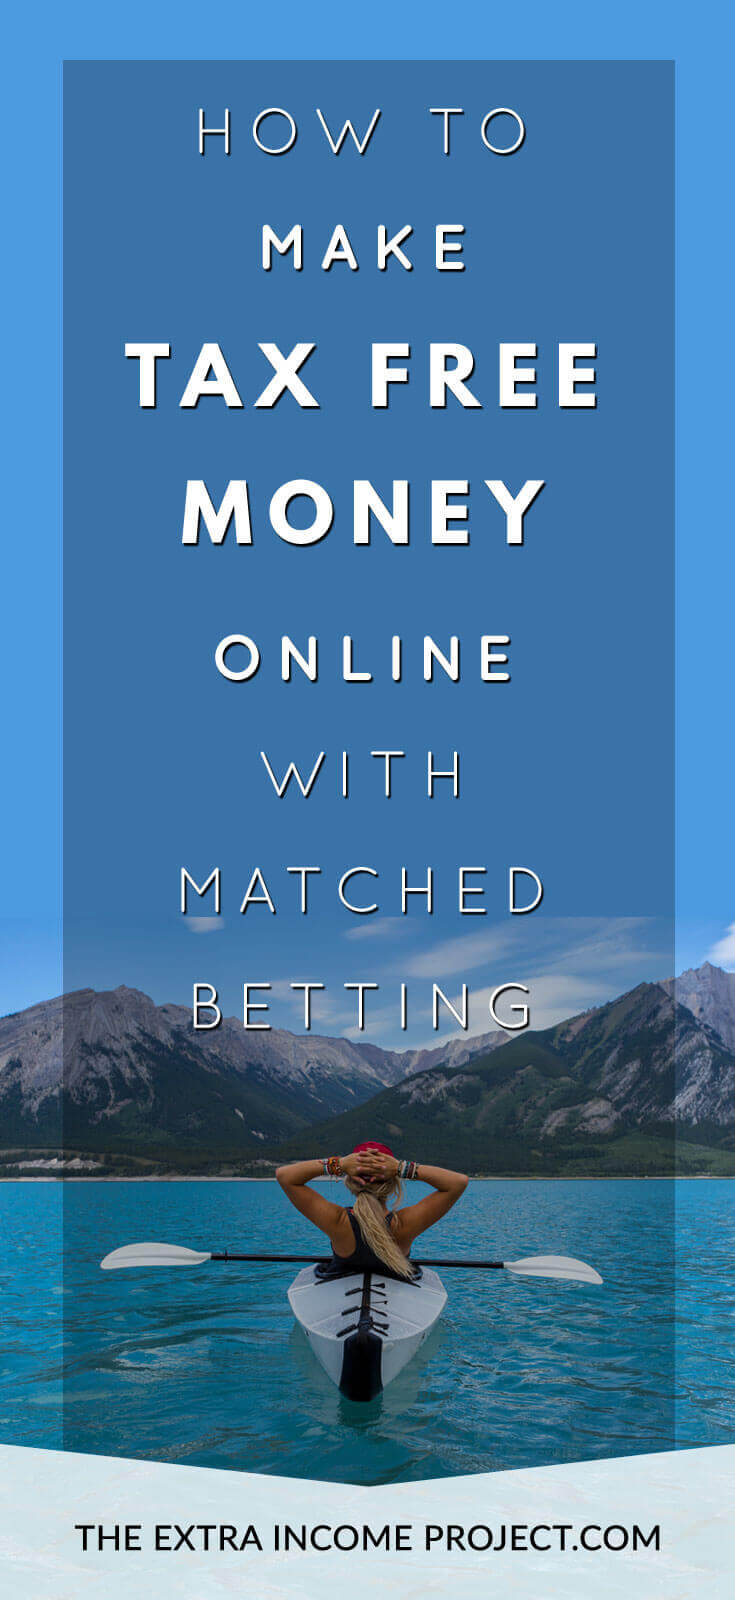 Find out how you can make fast tax free cash with matched betting. Matched betting enables you to make money online from the comfort of your own home. Click to learn how it works.